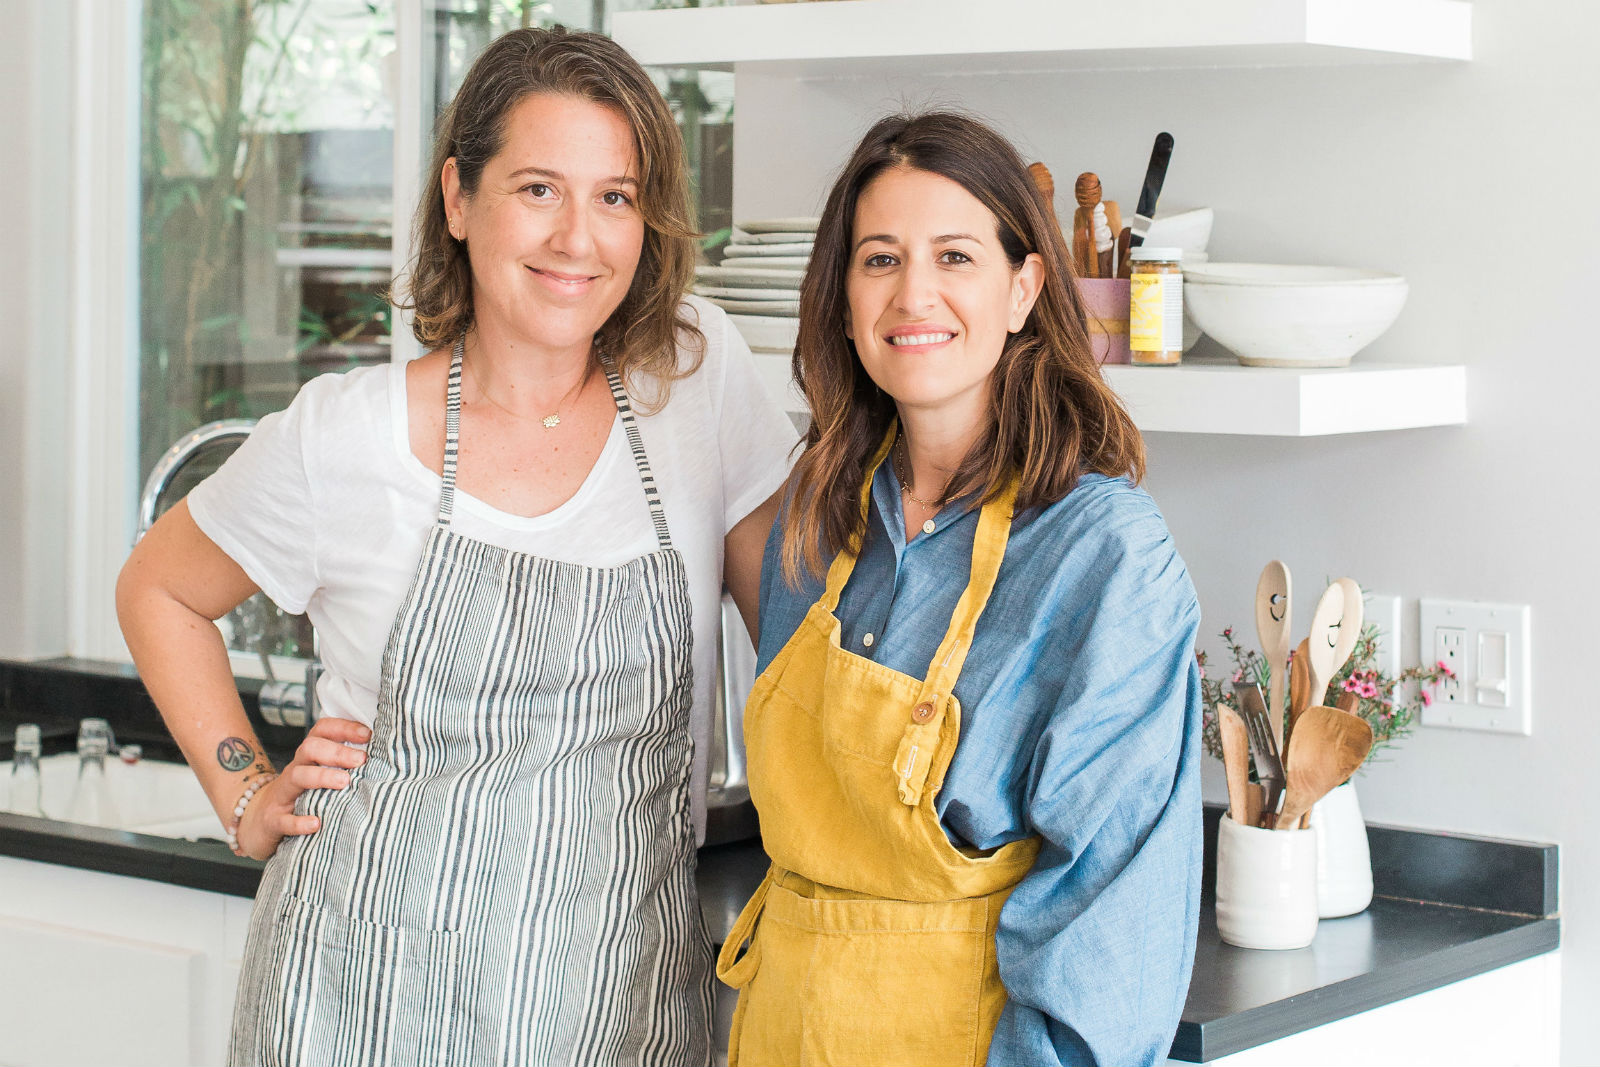 Nicole Rice and Jamie Kantrowitz founders of Countertop Foods.